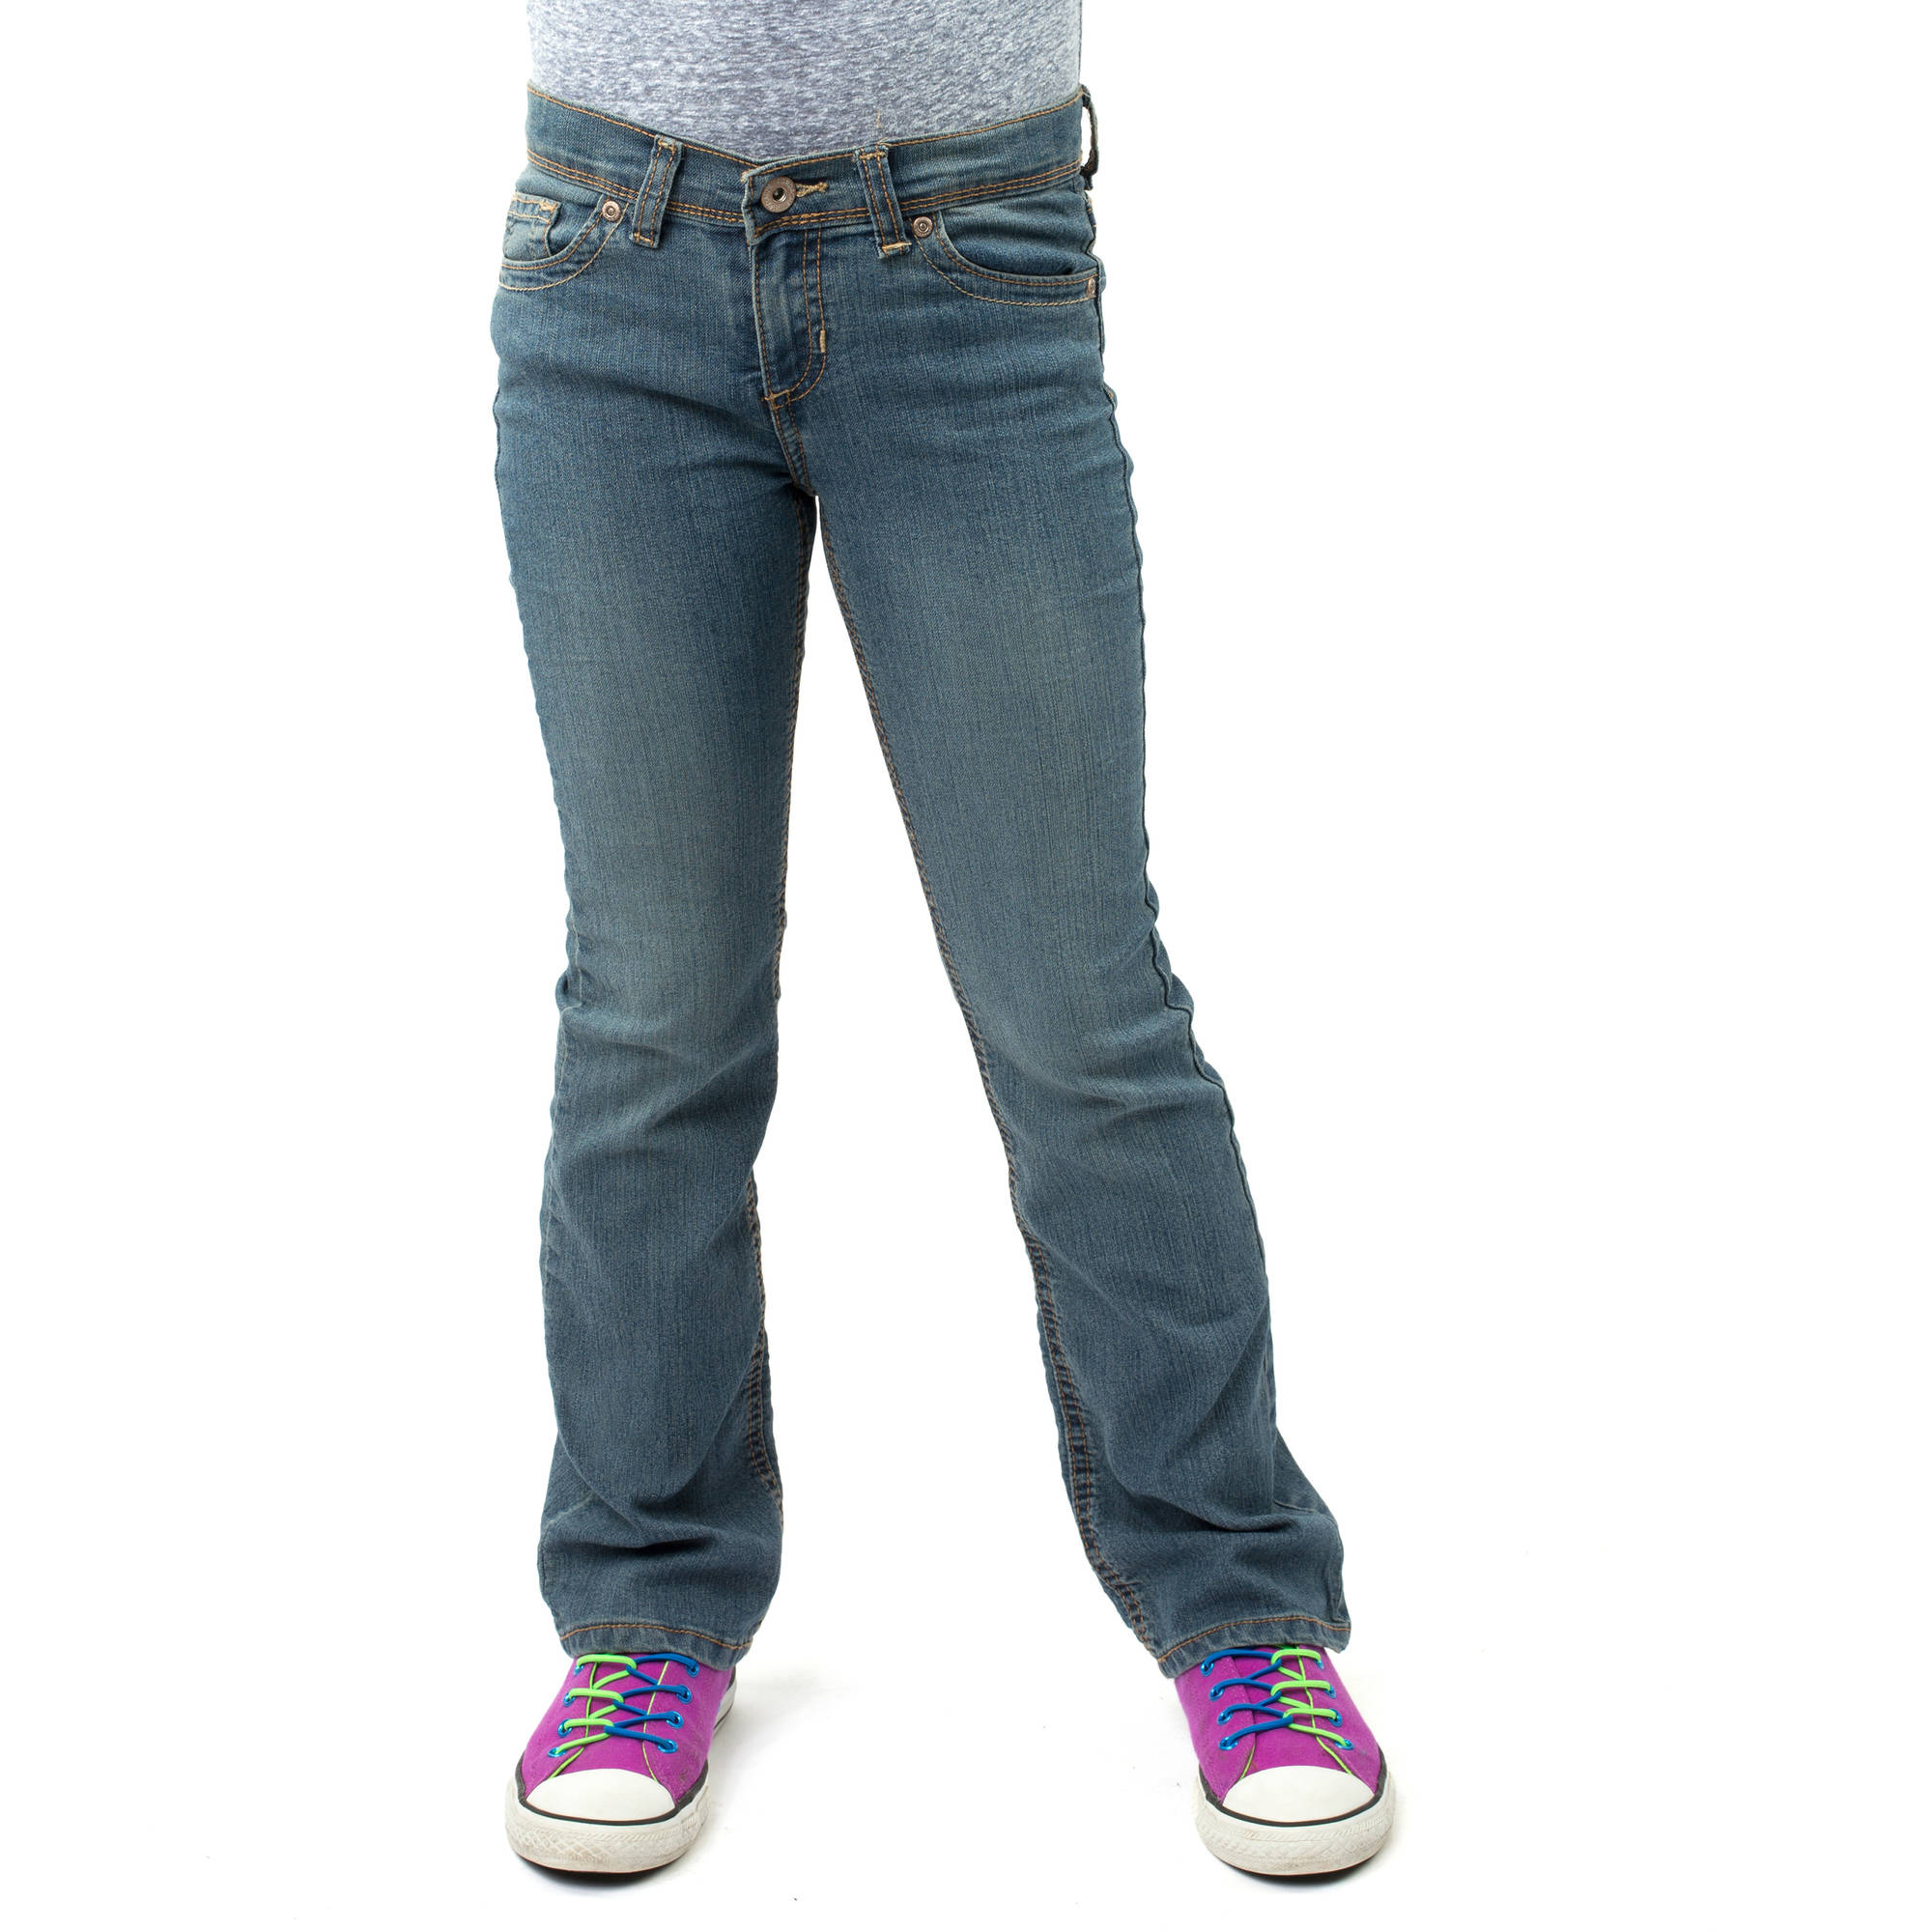 Jordache Girl's Bootcut Denim Jean, Slim Fit - Walmart.com